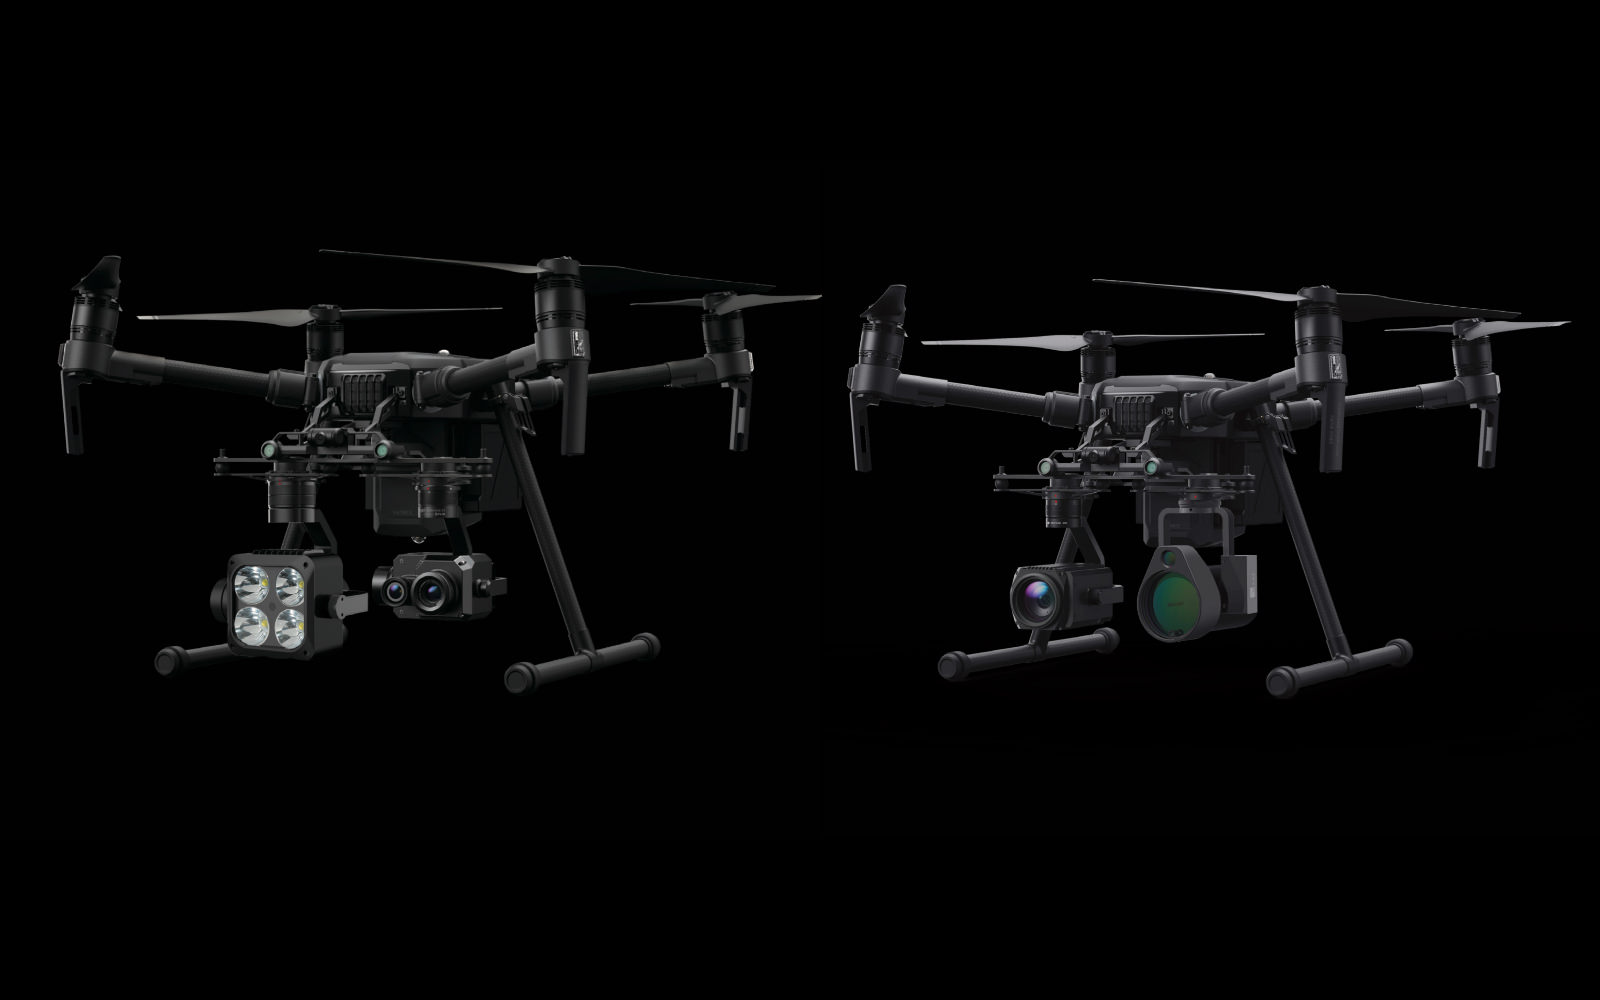 DJI announces methane gas detector and spotlight for Matrice drones